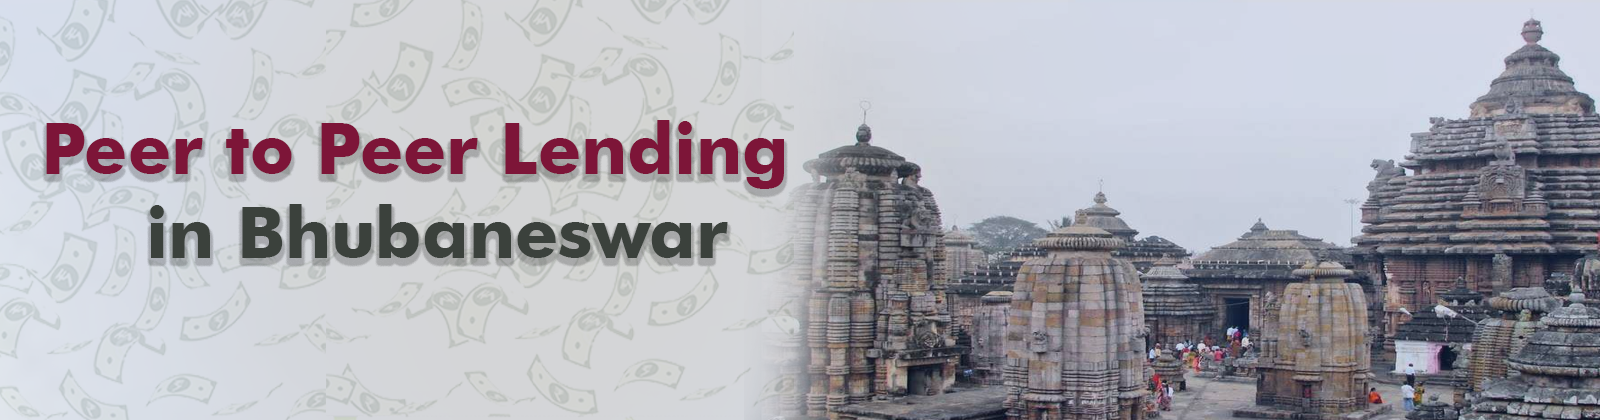 Peer to Peer Lending In Bhubaneswar